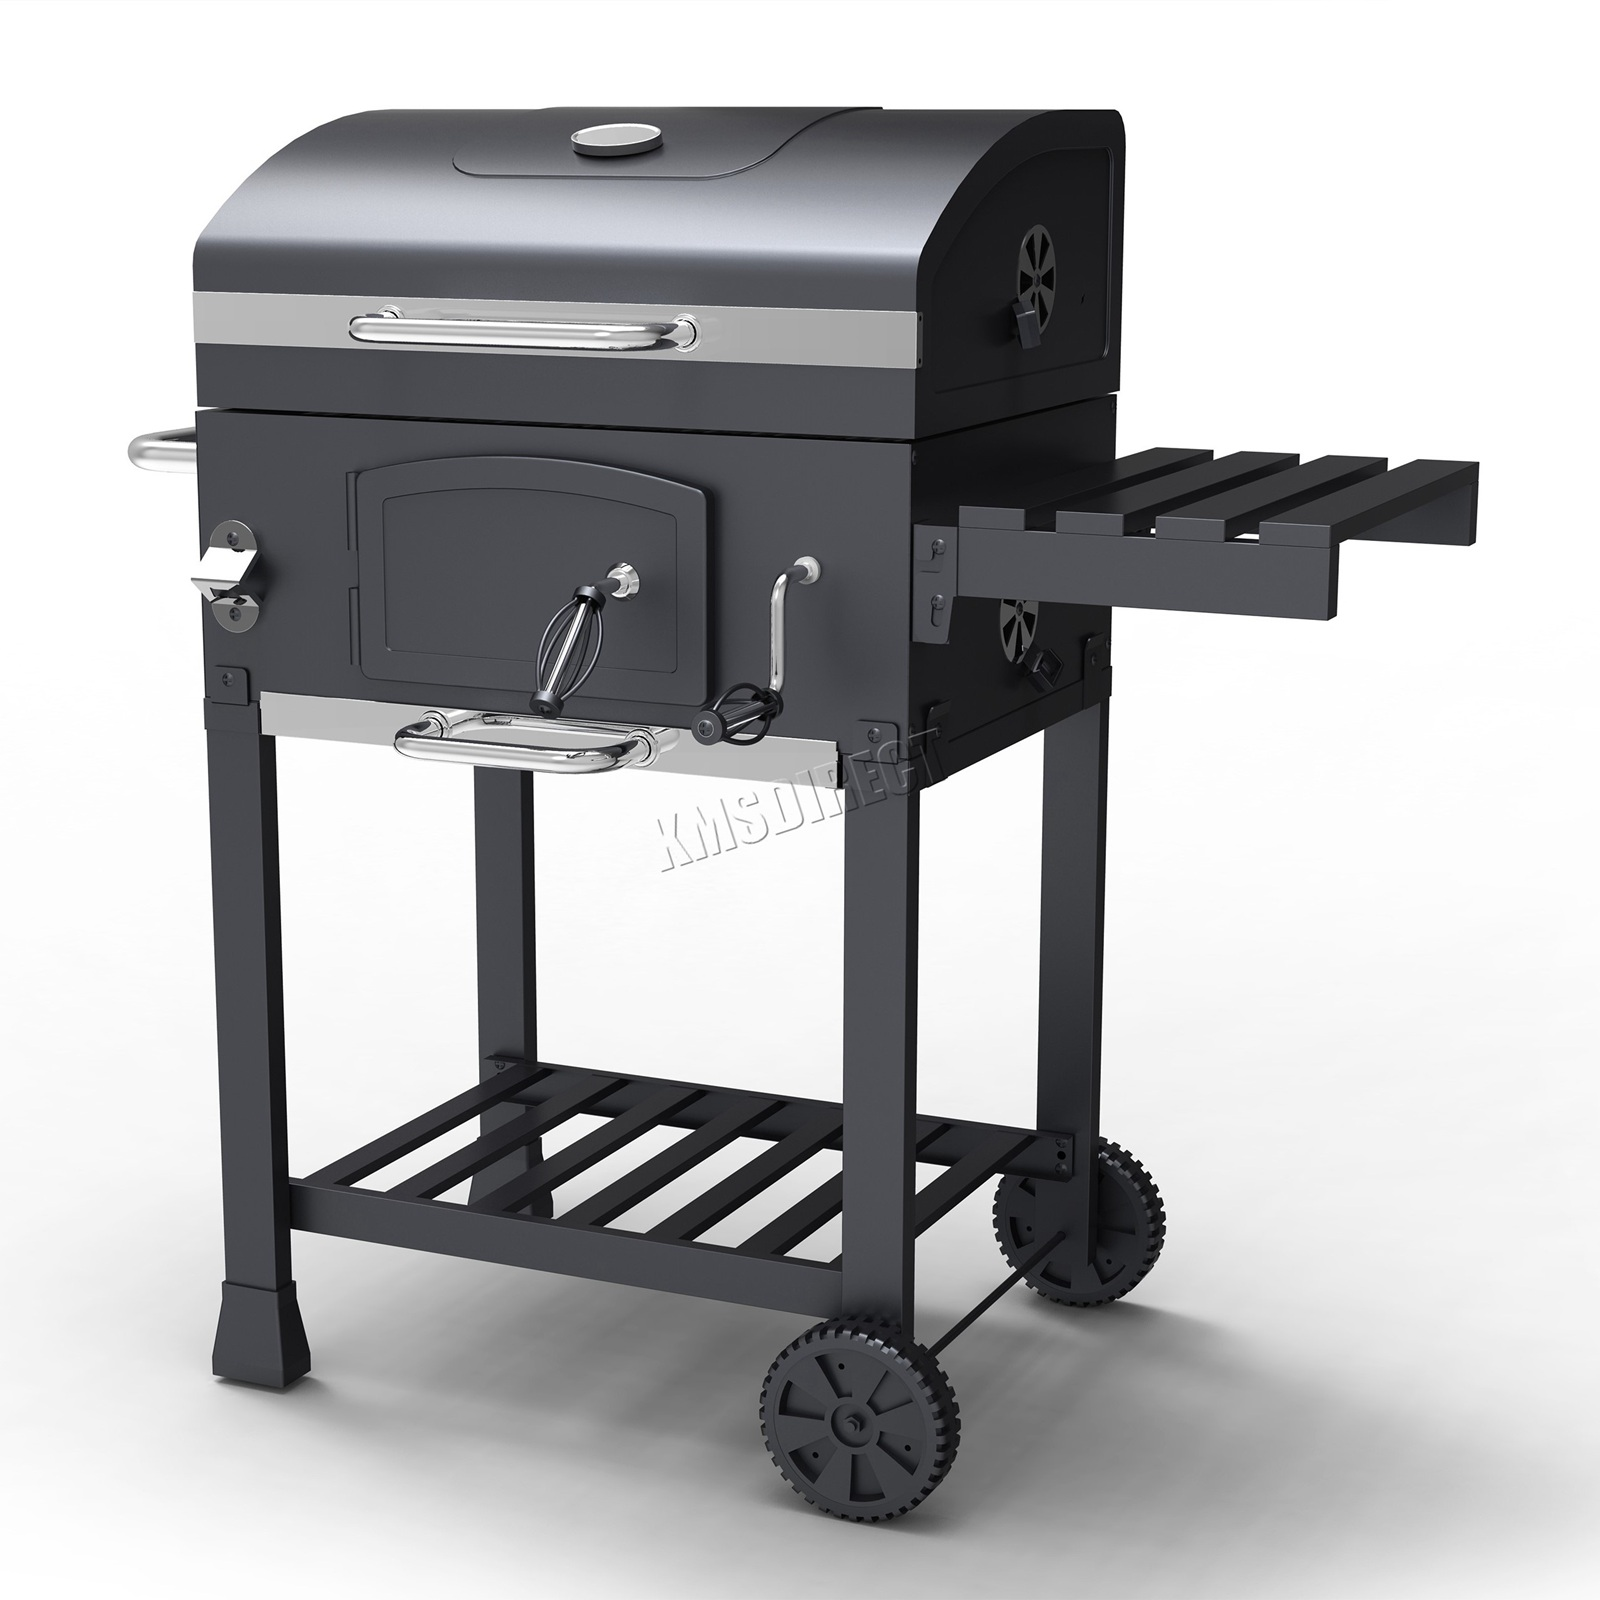 Details About Foxhunter Charcoal Bbq Grill Barbecue Smoker Grate Garden Portable Outdoor Grey